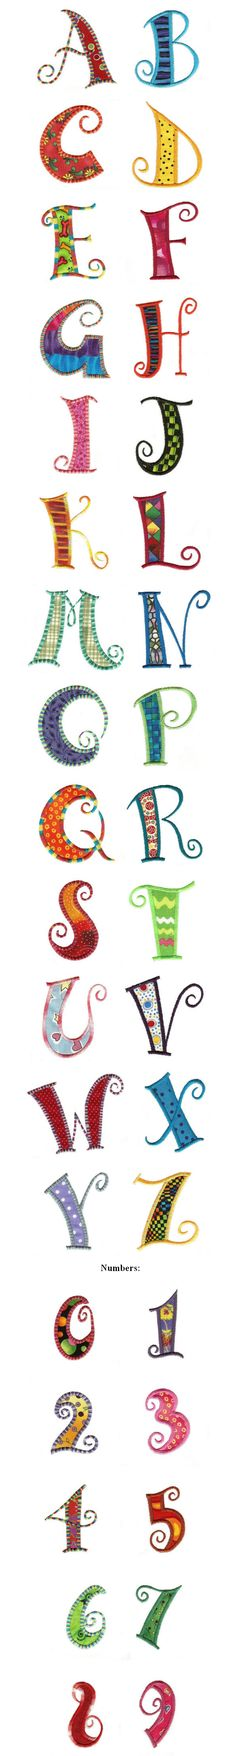 Here is a great curly applique alphabet. Capital letters and numbers included. Exclusive artwork for Designs by JuJu by Christopher Brown This font also inc Embroidery Designs, Embroidery Fonts, Applique Designs, Embroidery Applique, Machine Embroidery, Embroidery Alphabet, Doodle Lettering, Creative Lettering, Lettering Styles